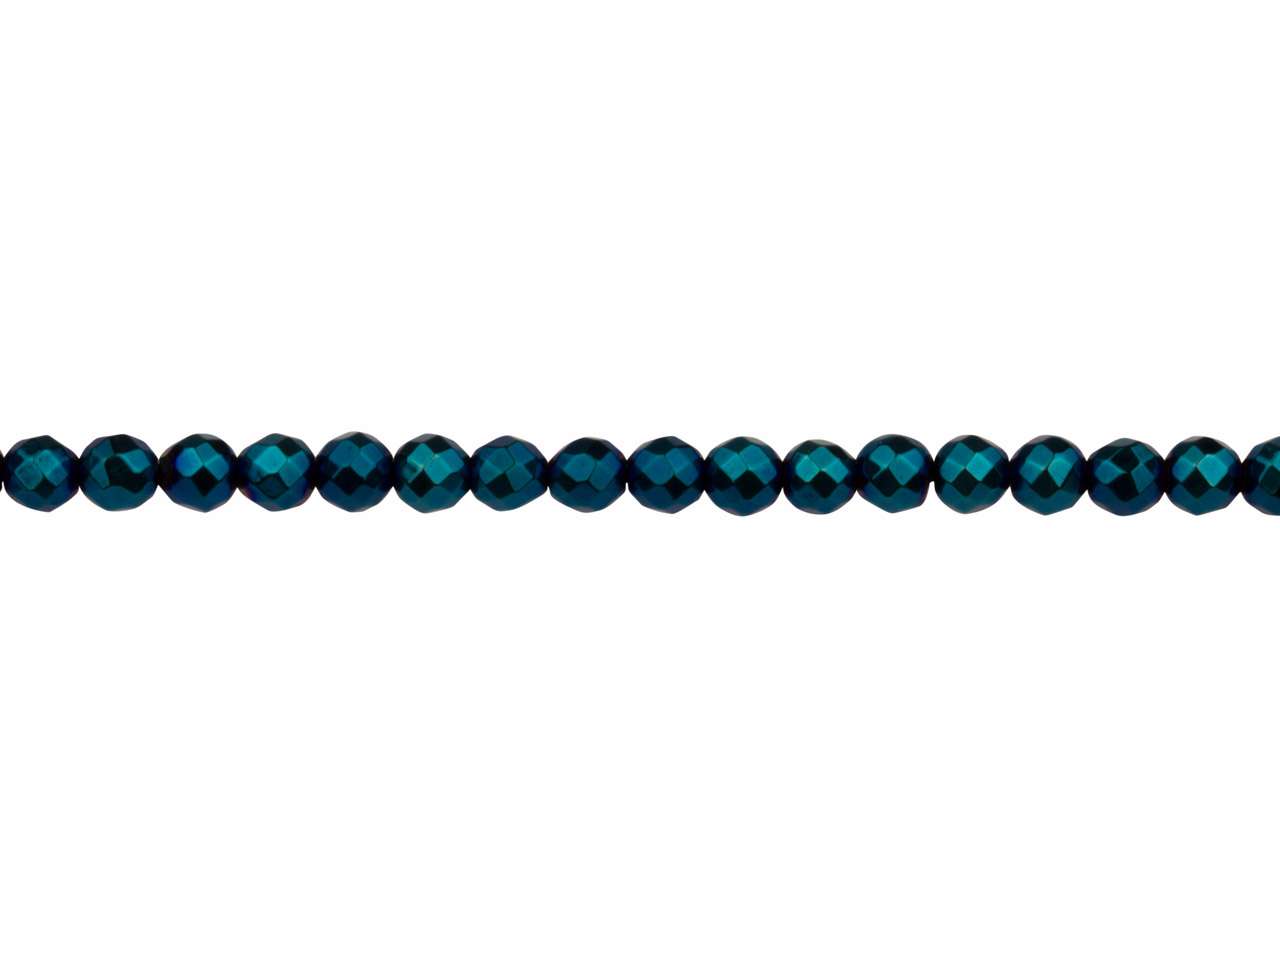 Electroplated Hematite Semi         Precious Faceted Round Beads, Blue, 4mm, 16